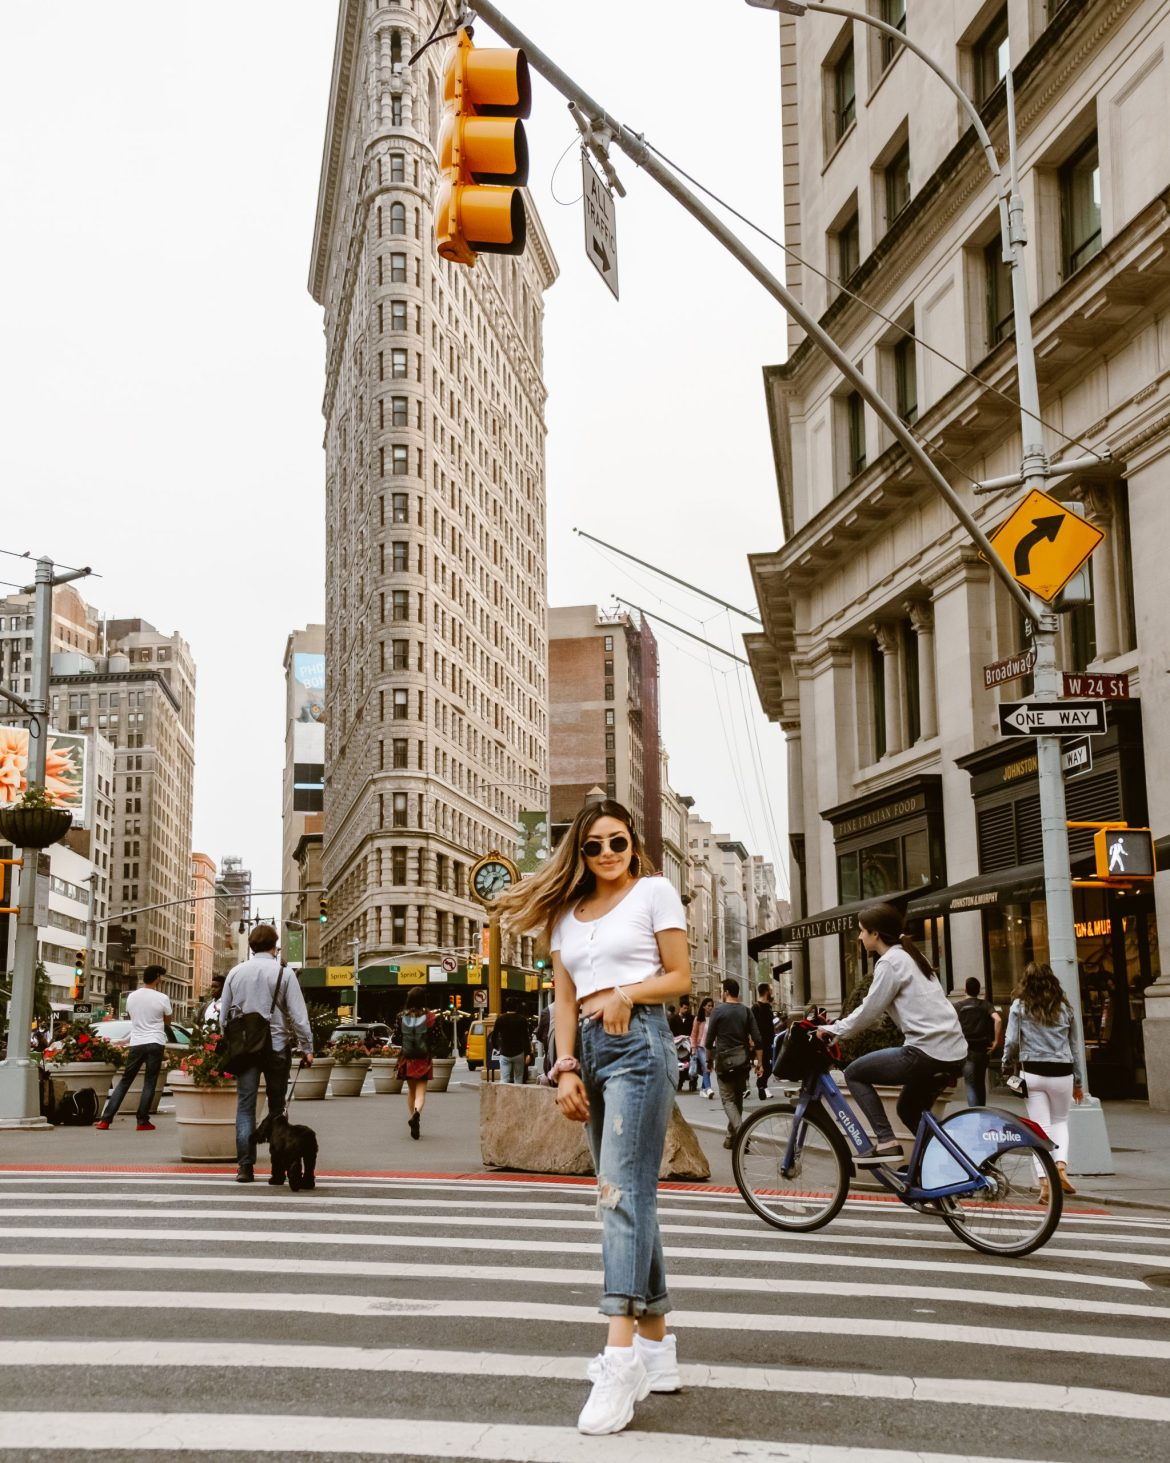 17 Best Instagram Worthy Spots in New York | Flatiron Building New York, NY outfit